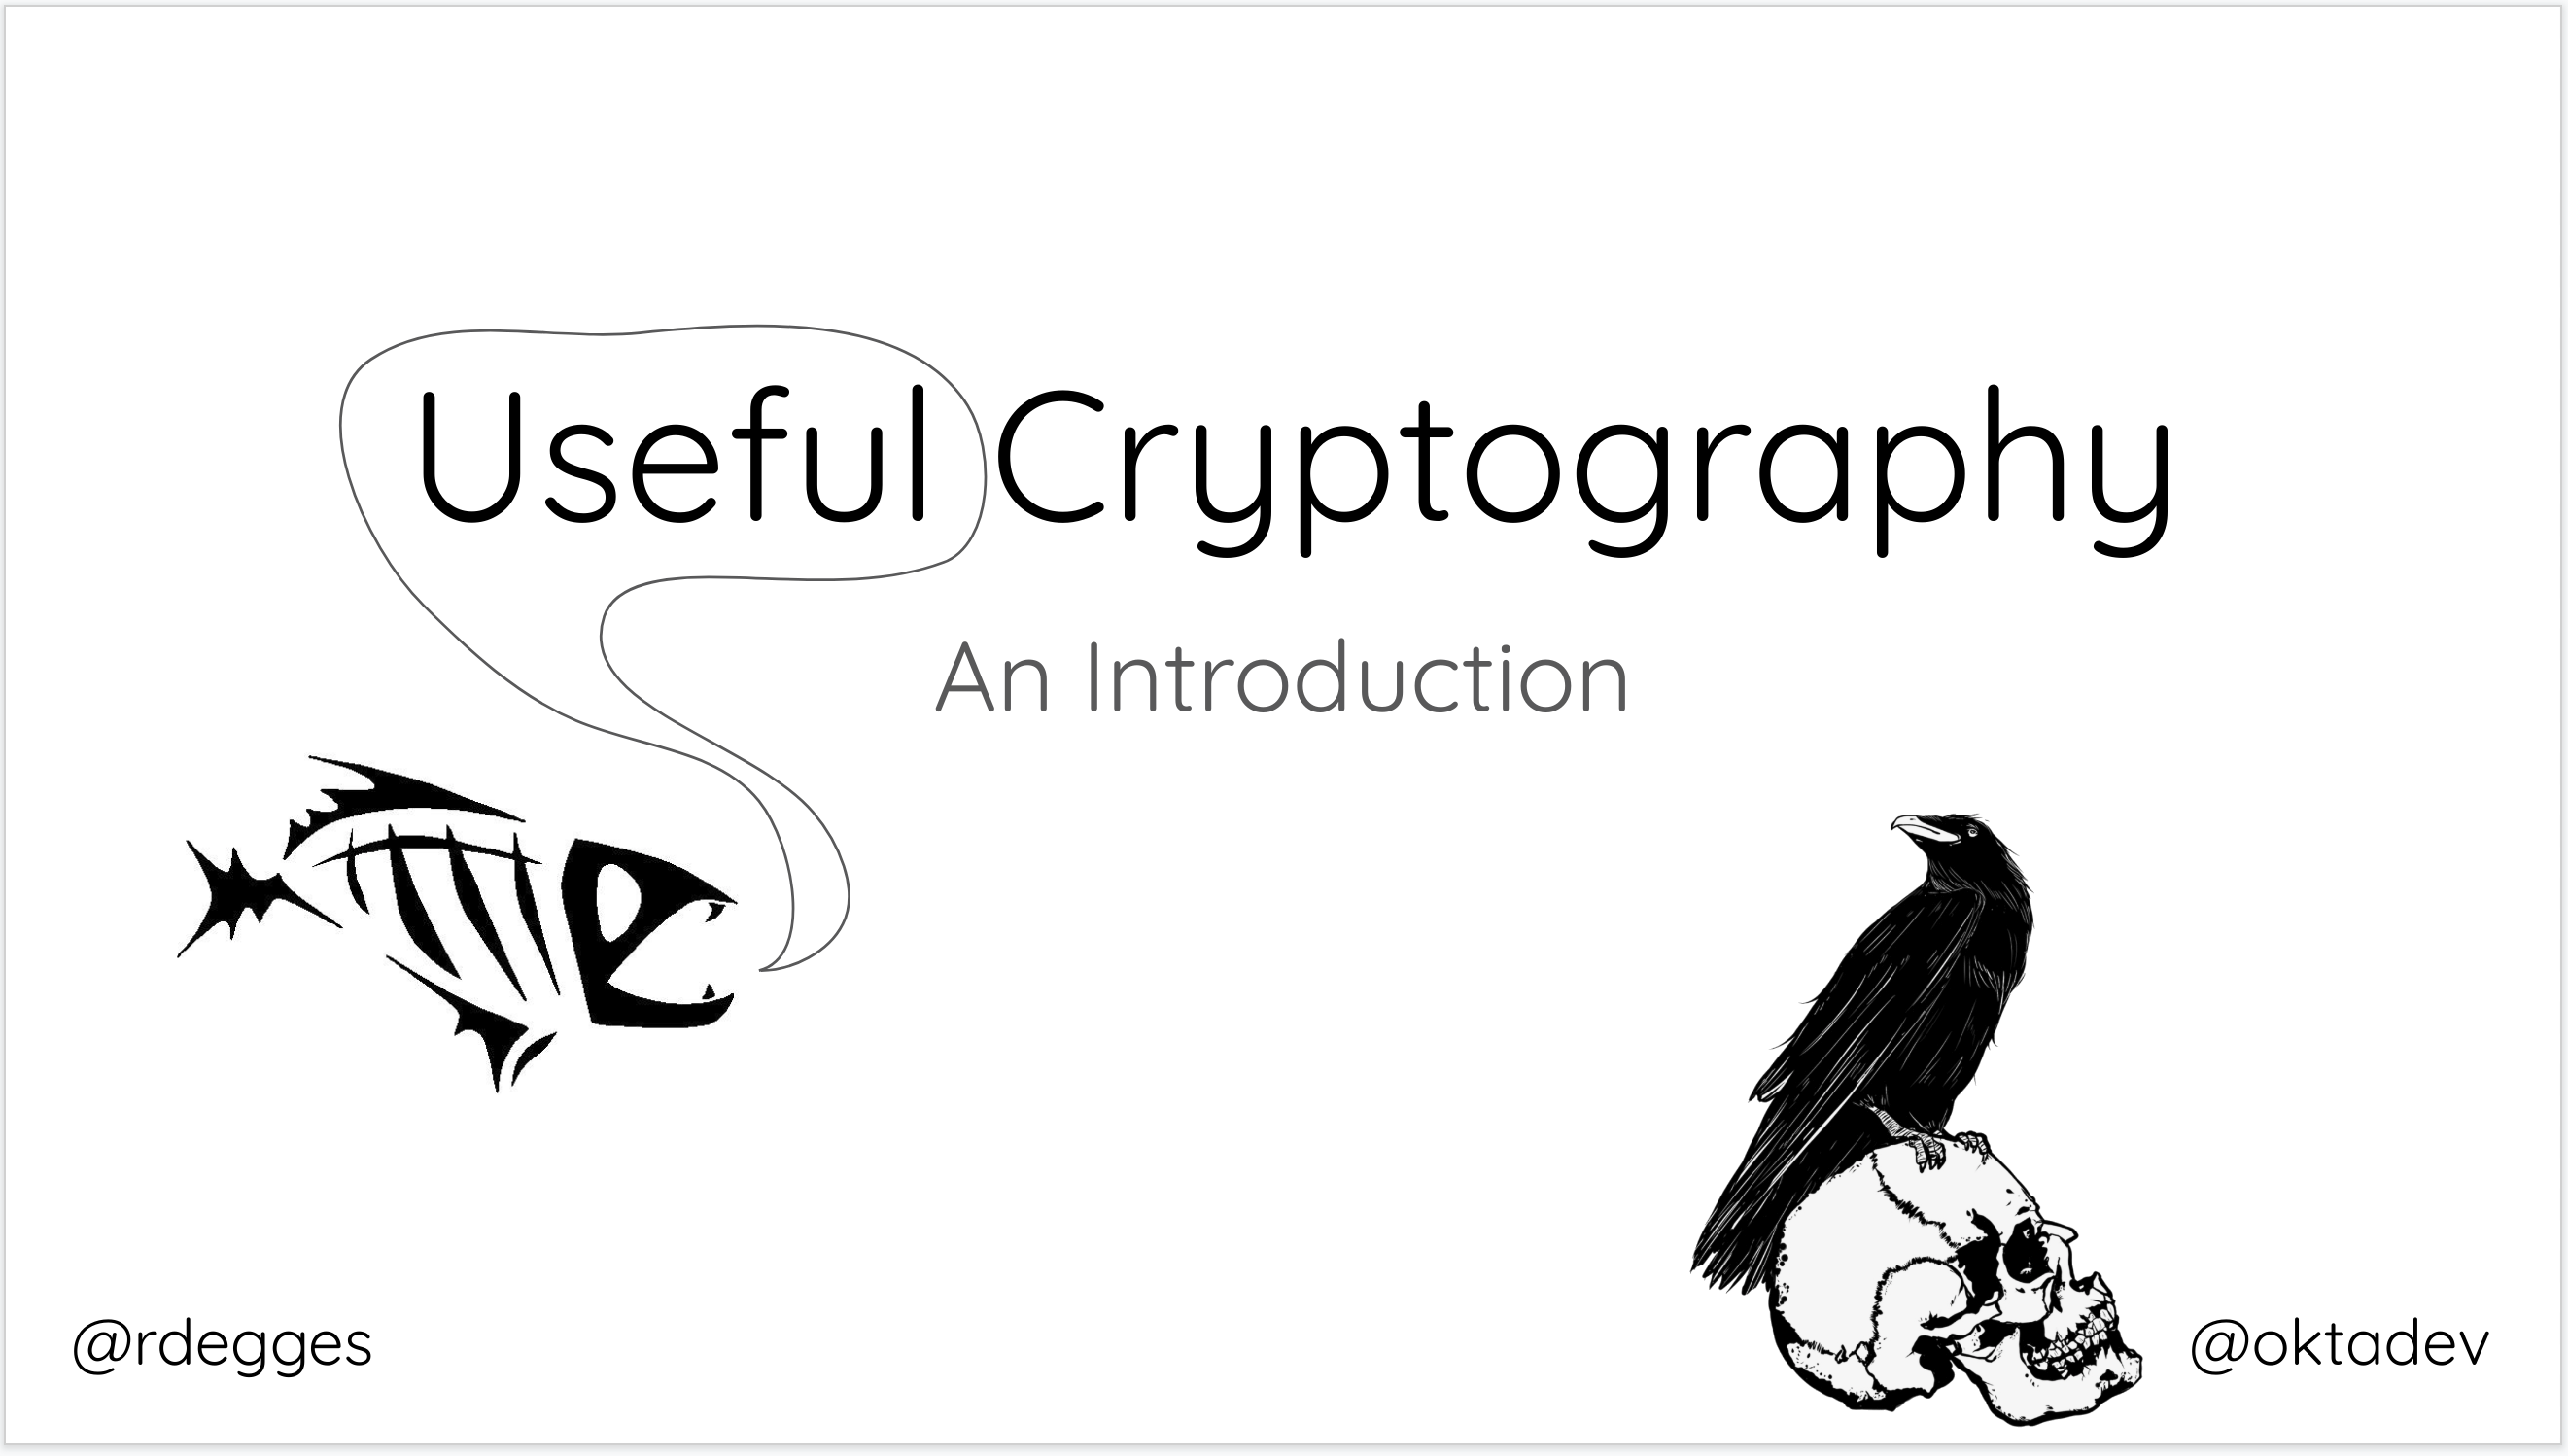 useful cryptography